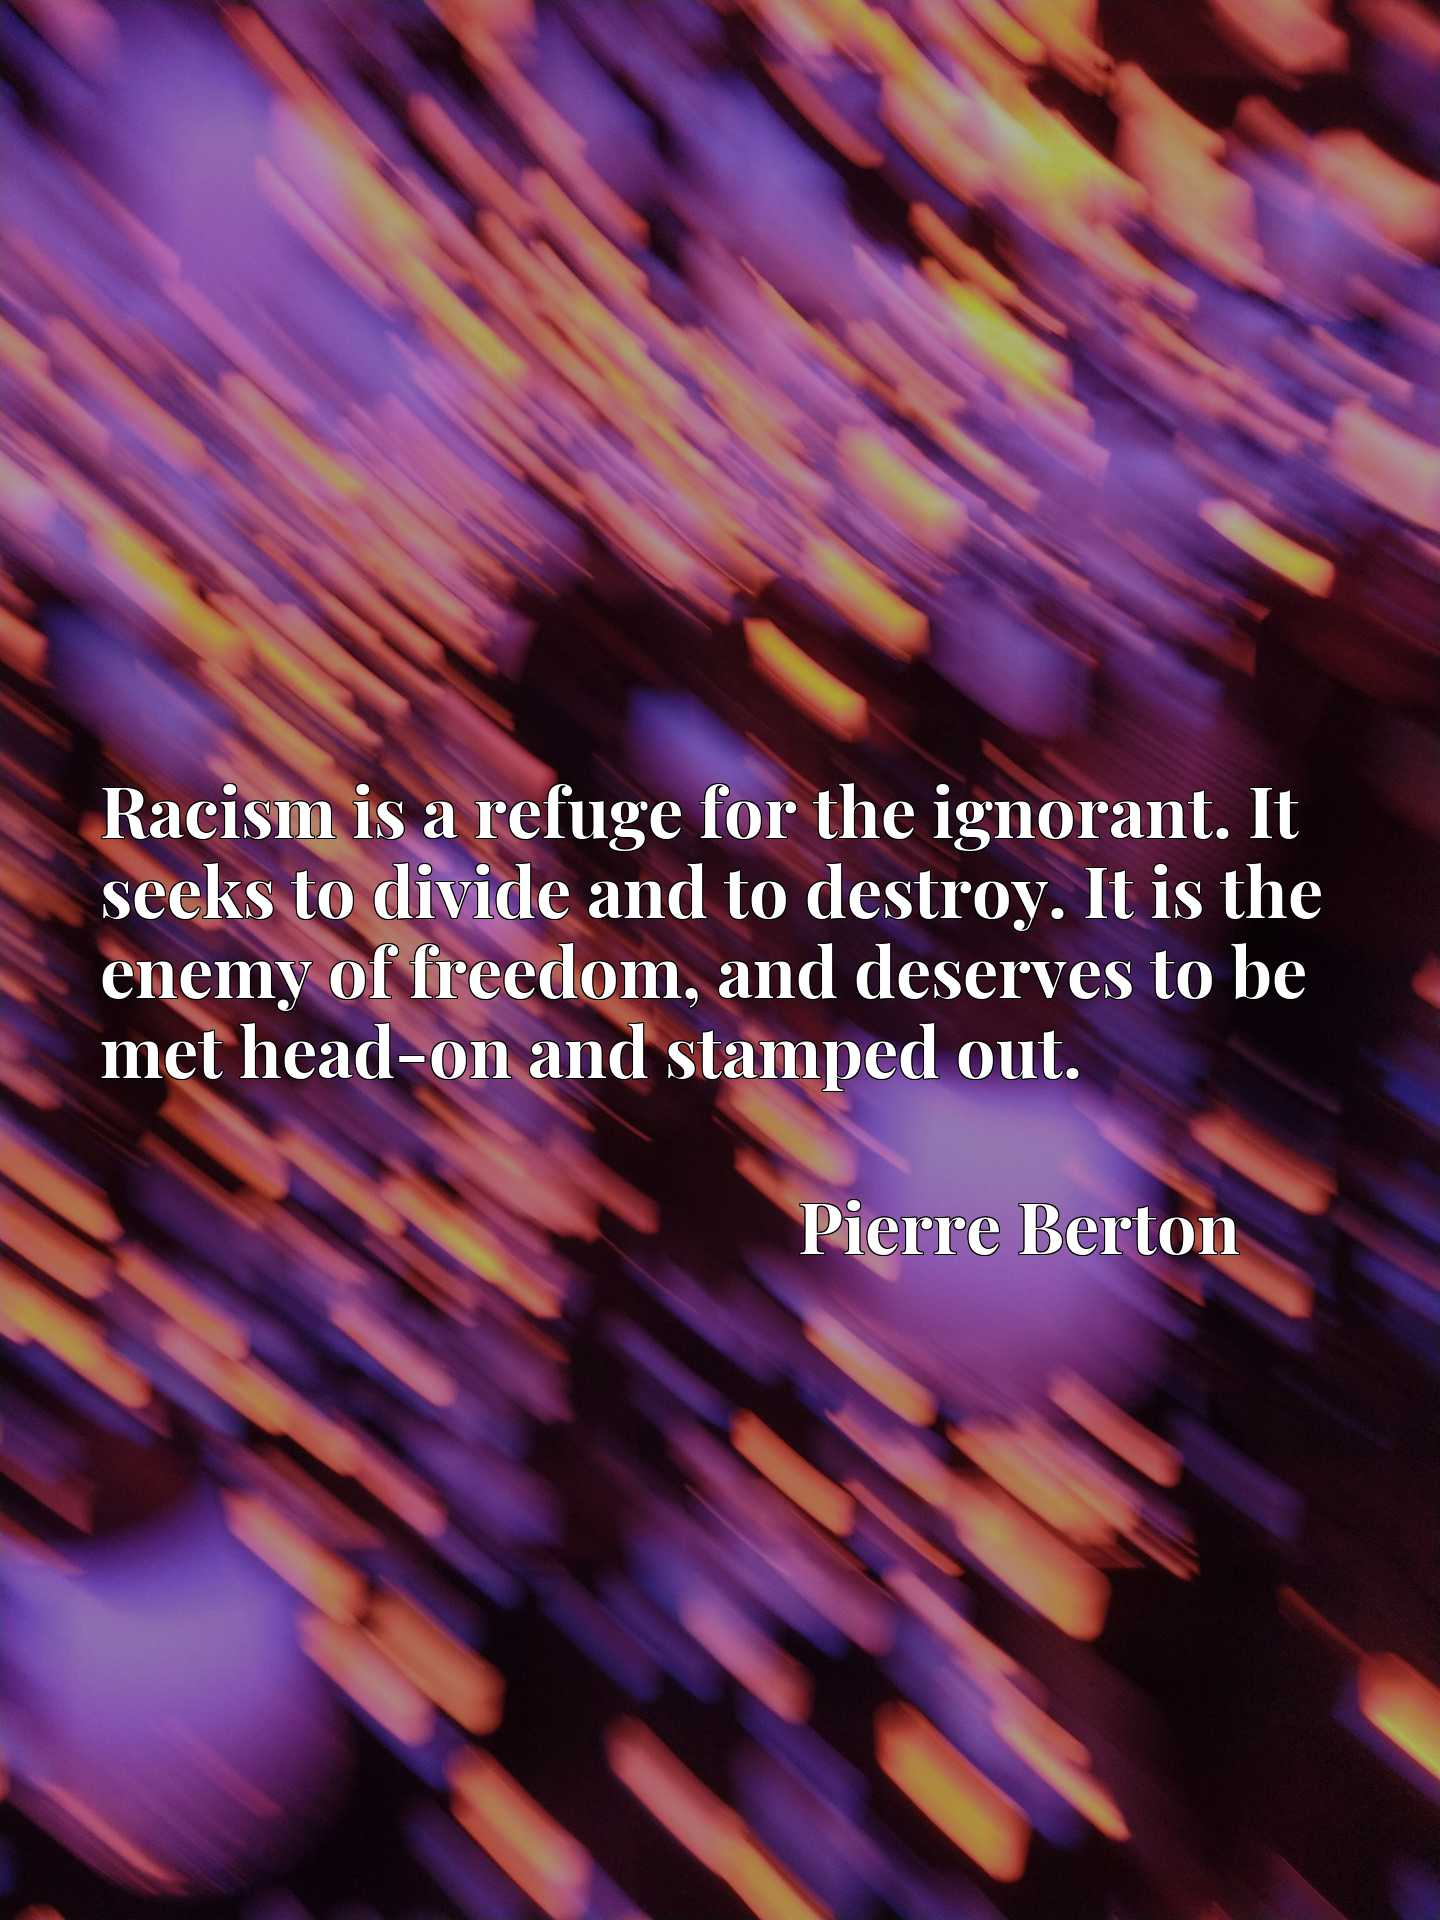 Racism is a refuge for the ignorant. It seeks to divide and to destroy. It is the enemy of freedom, and deserves to be met head-on and stamped out.